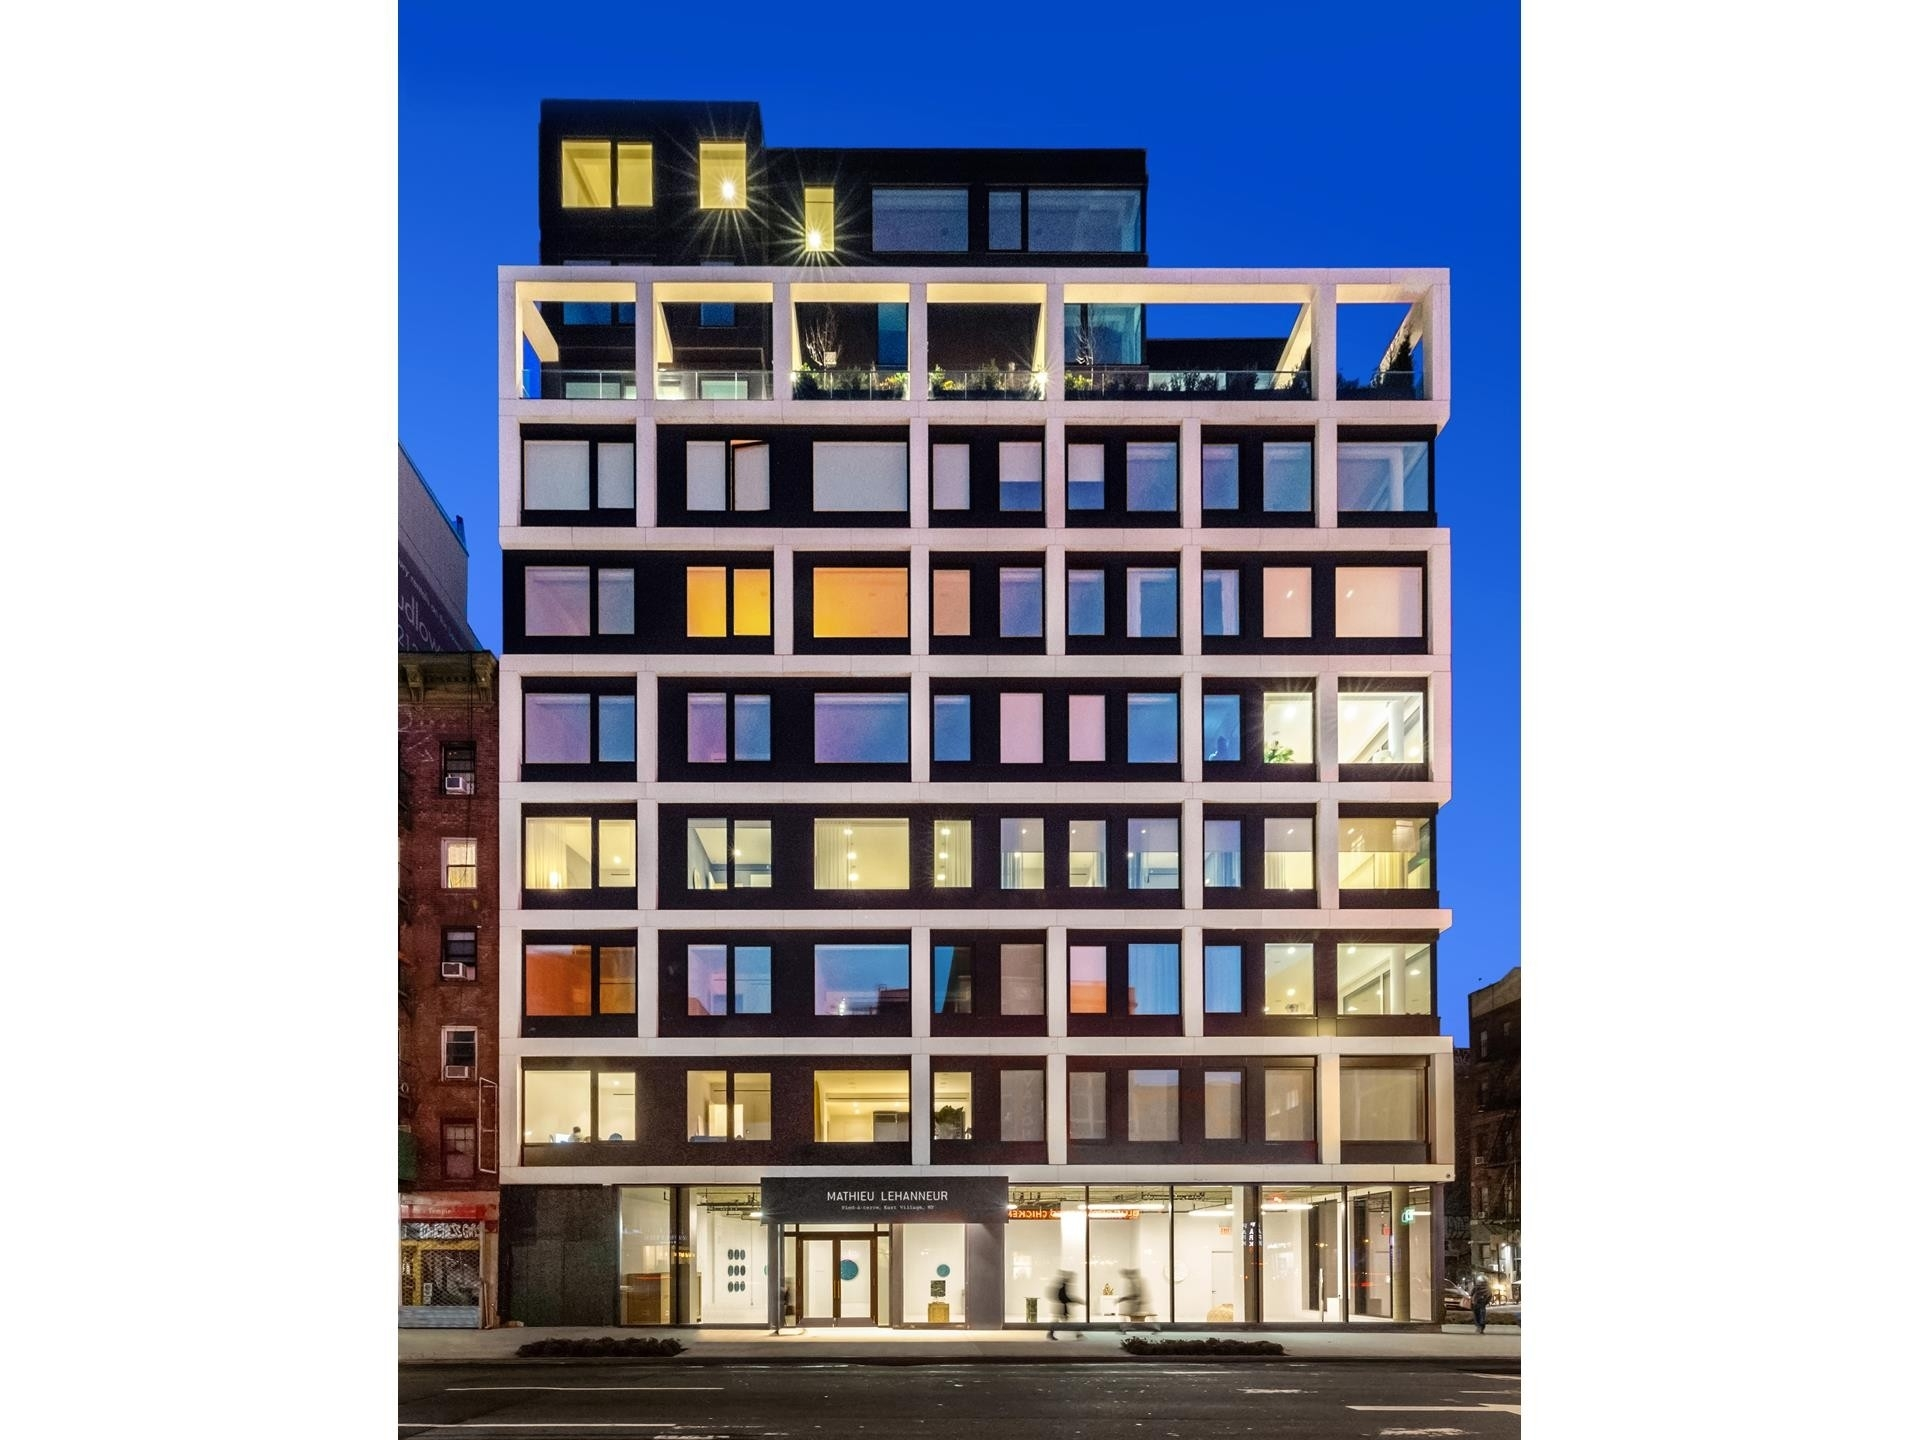 26. Condominiums for Sale at 32 E 1ST ST , PHBC East Village, New York, NY 10003